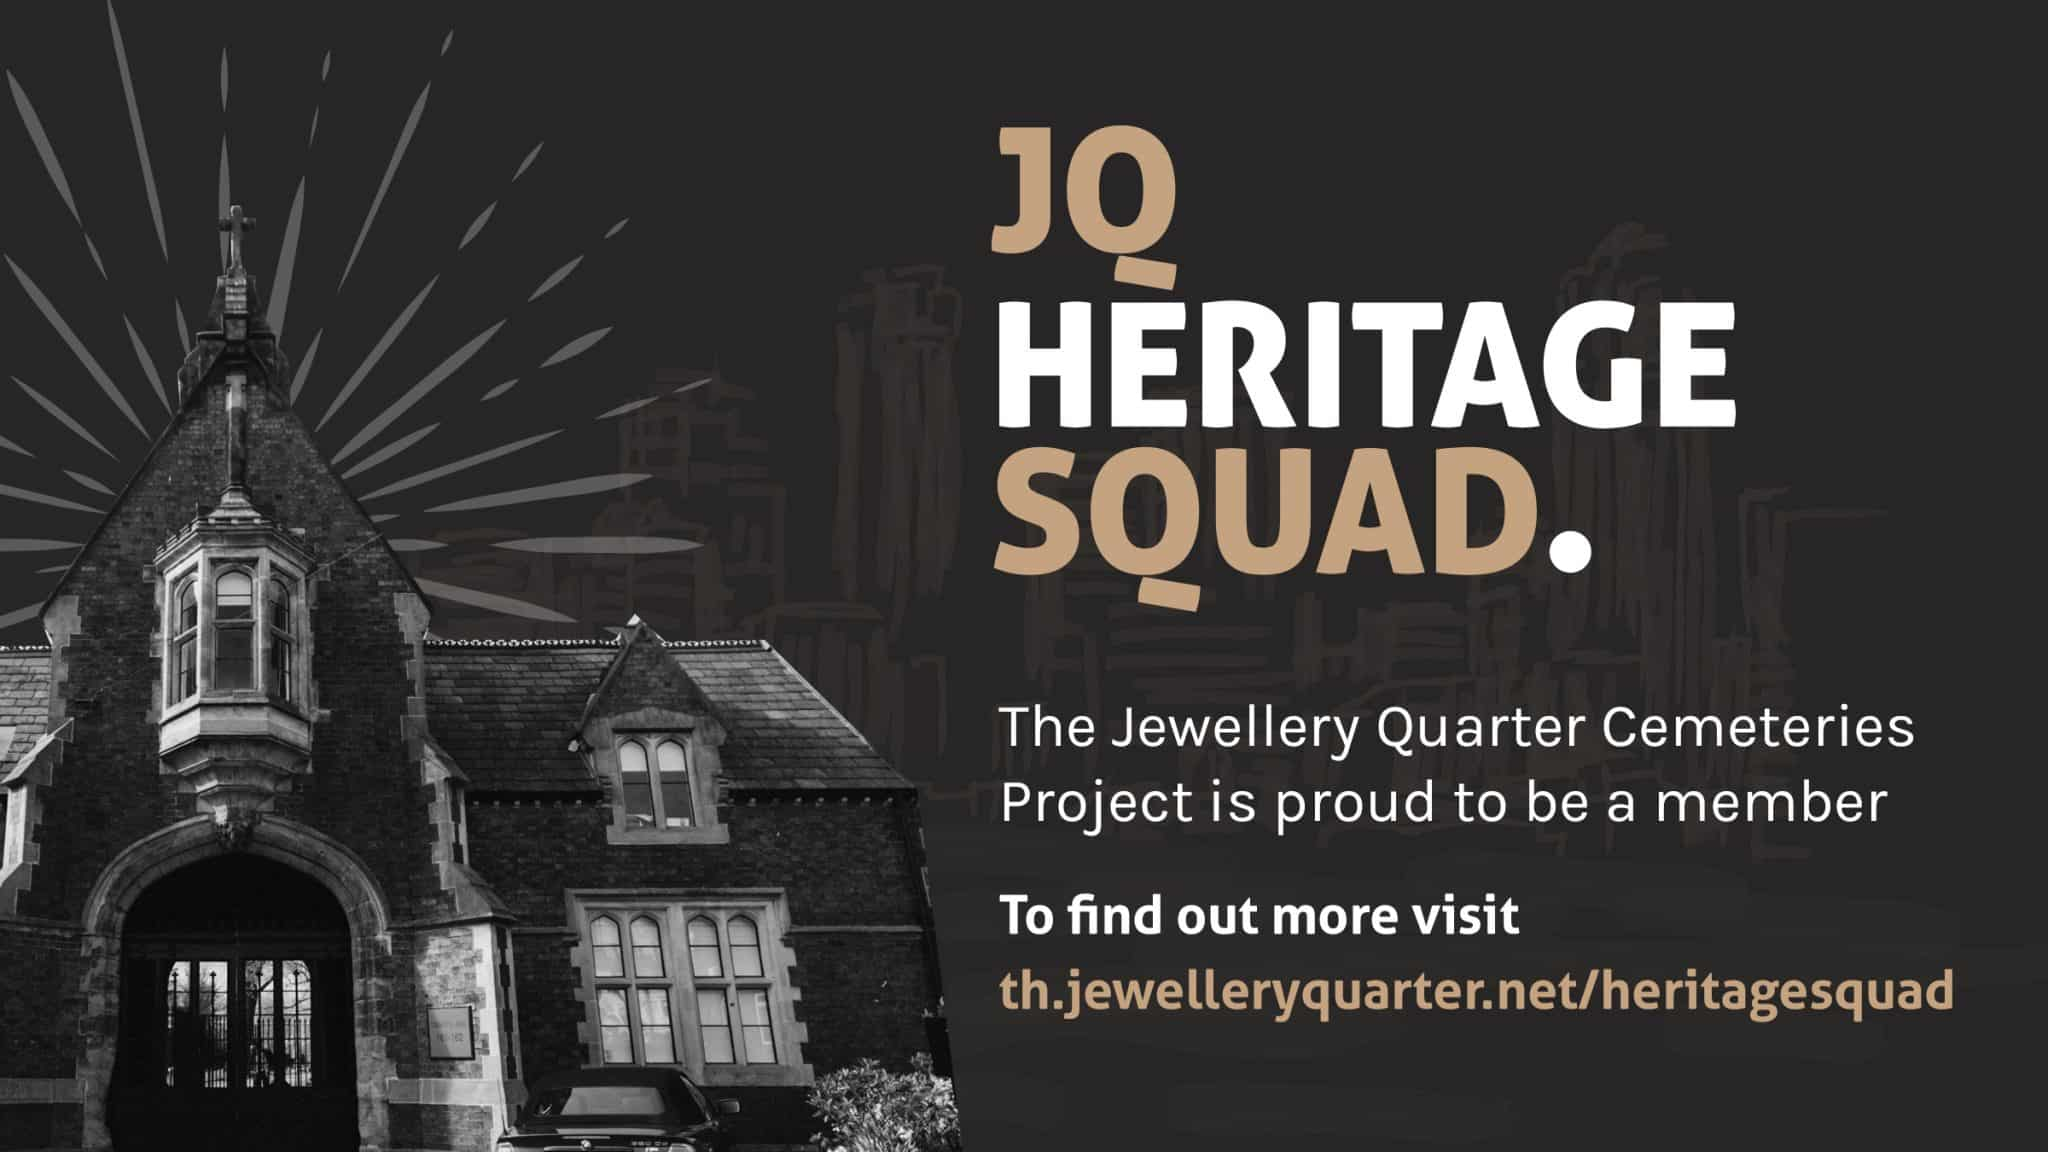 JQTH-Social-HeritageSquad-Cemeteries-Twitter